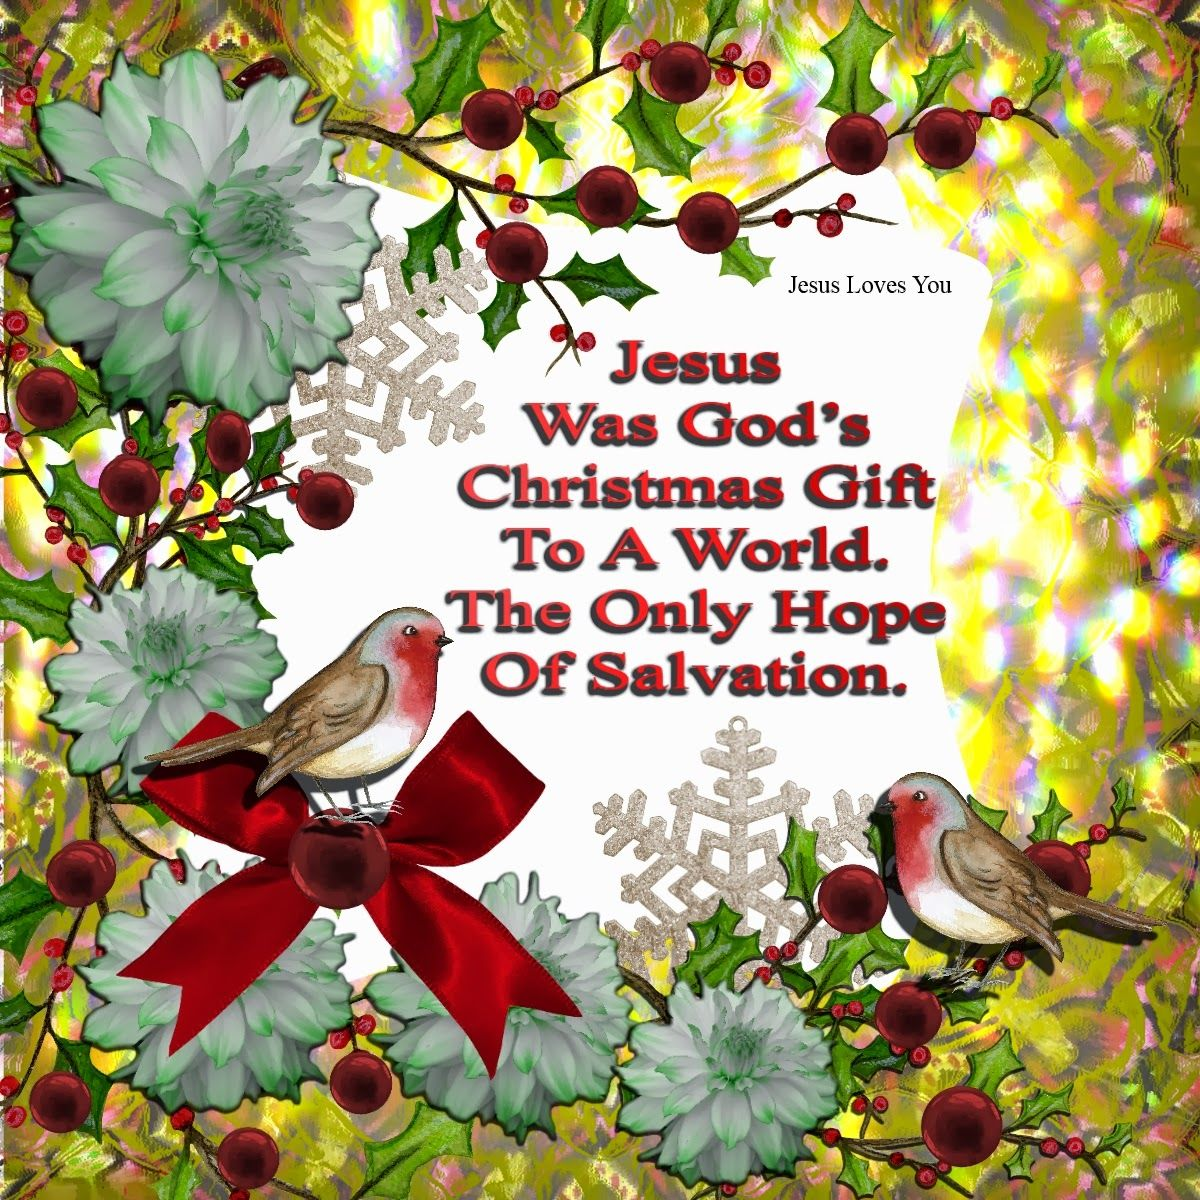 Jesus Was God's Christmas Gift To The World Pictures, Photos, and Images for Facebook, Tumblr ...